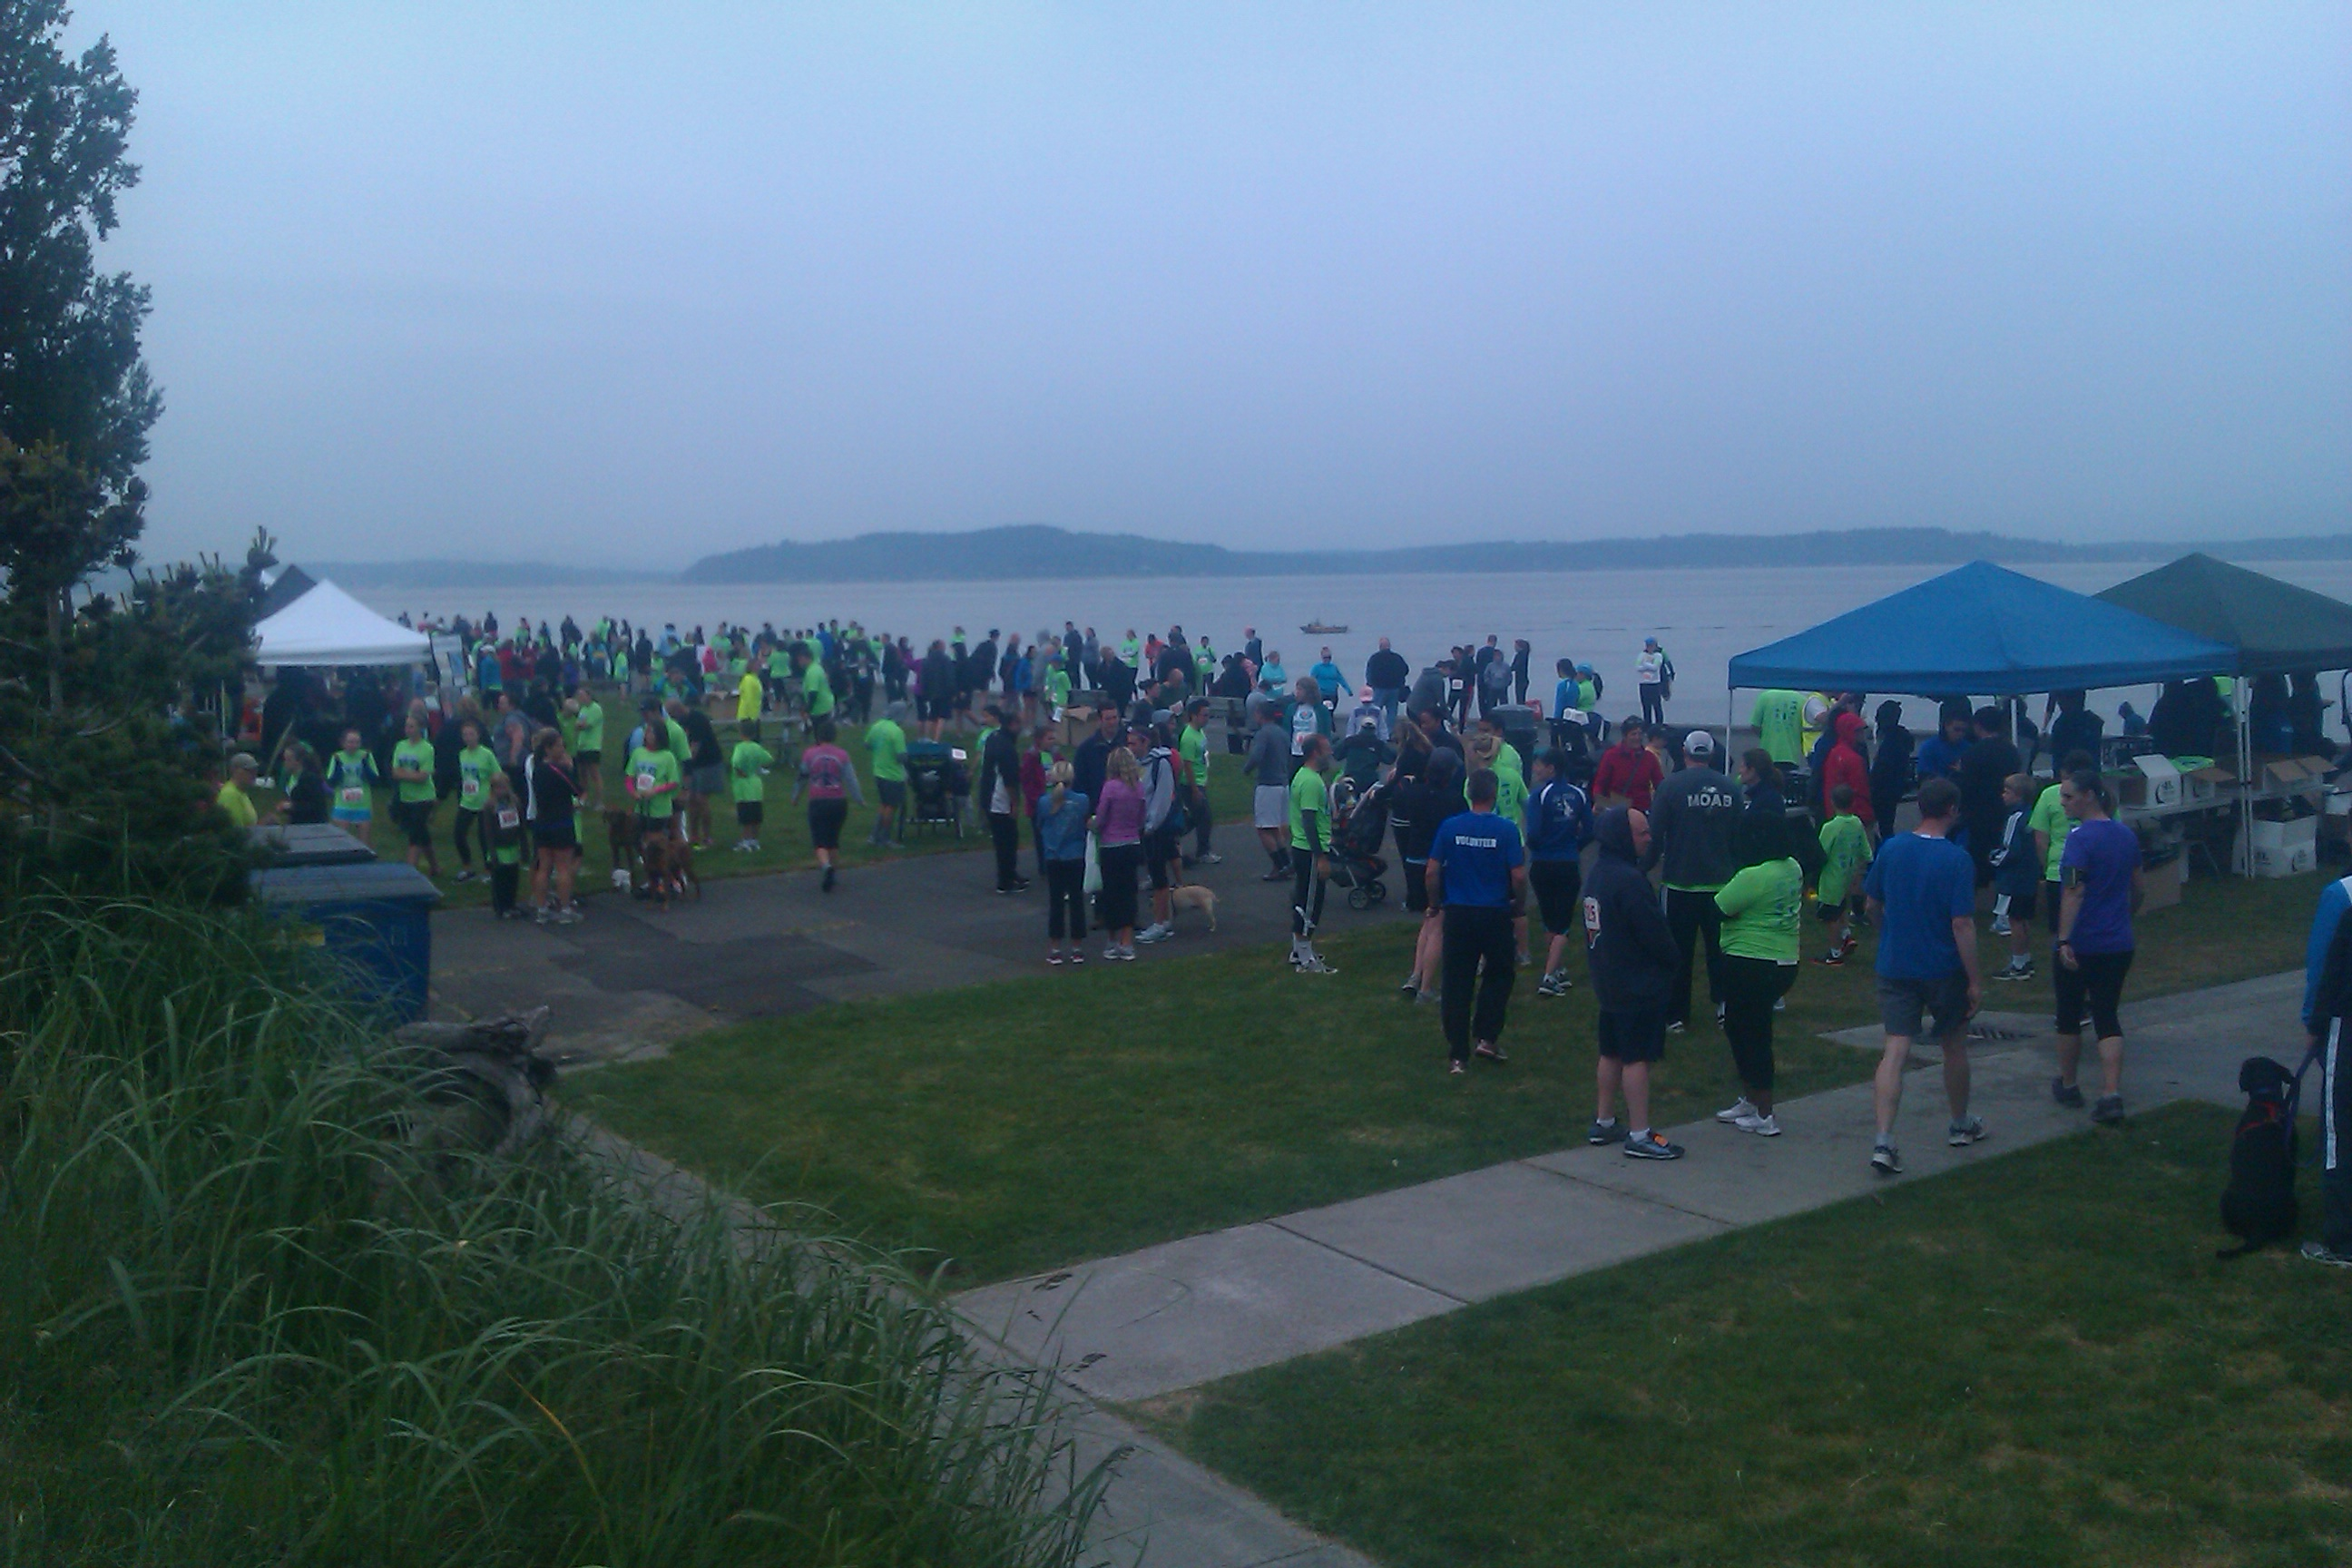 getting ready for West Seattle 5k race